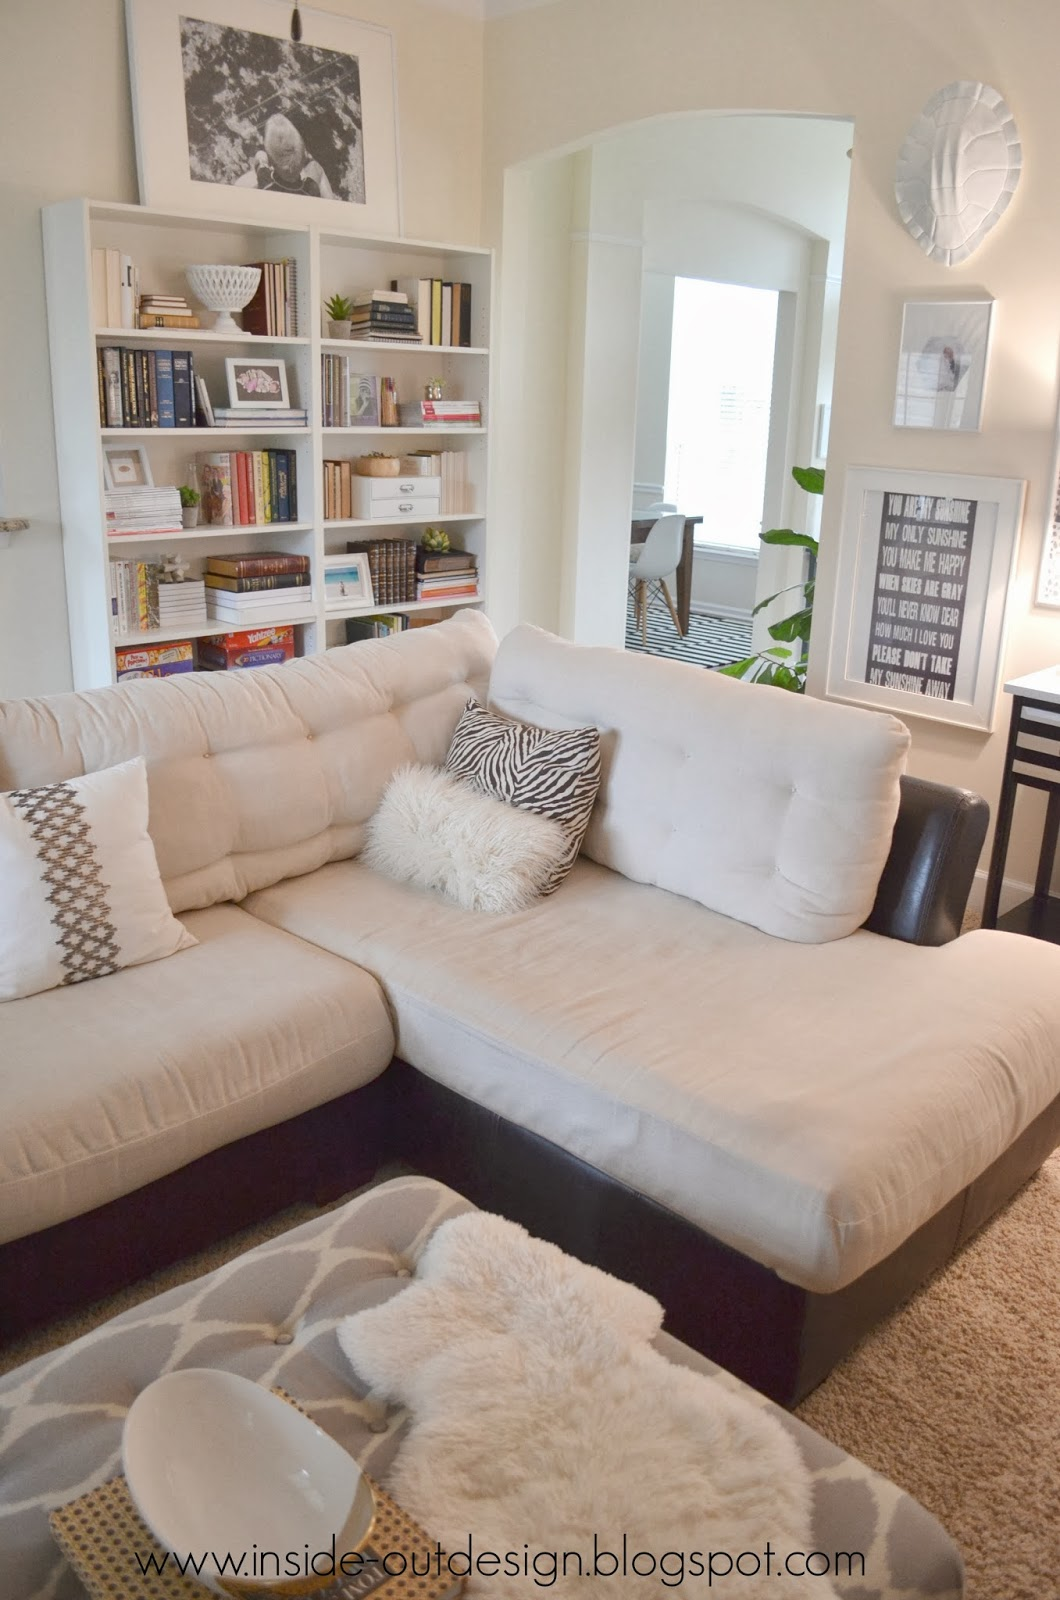 Inside-Out Design: Living Room Bookcases